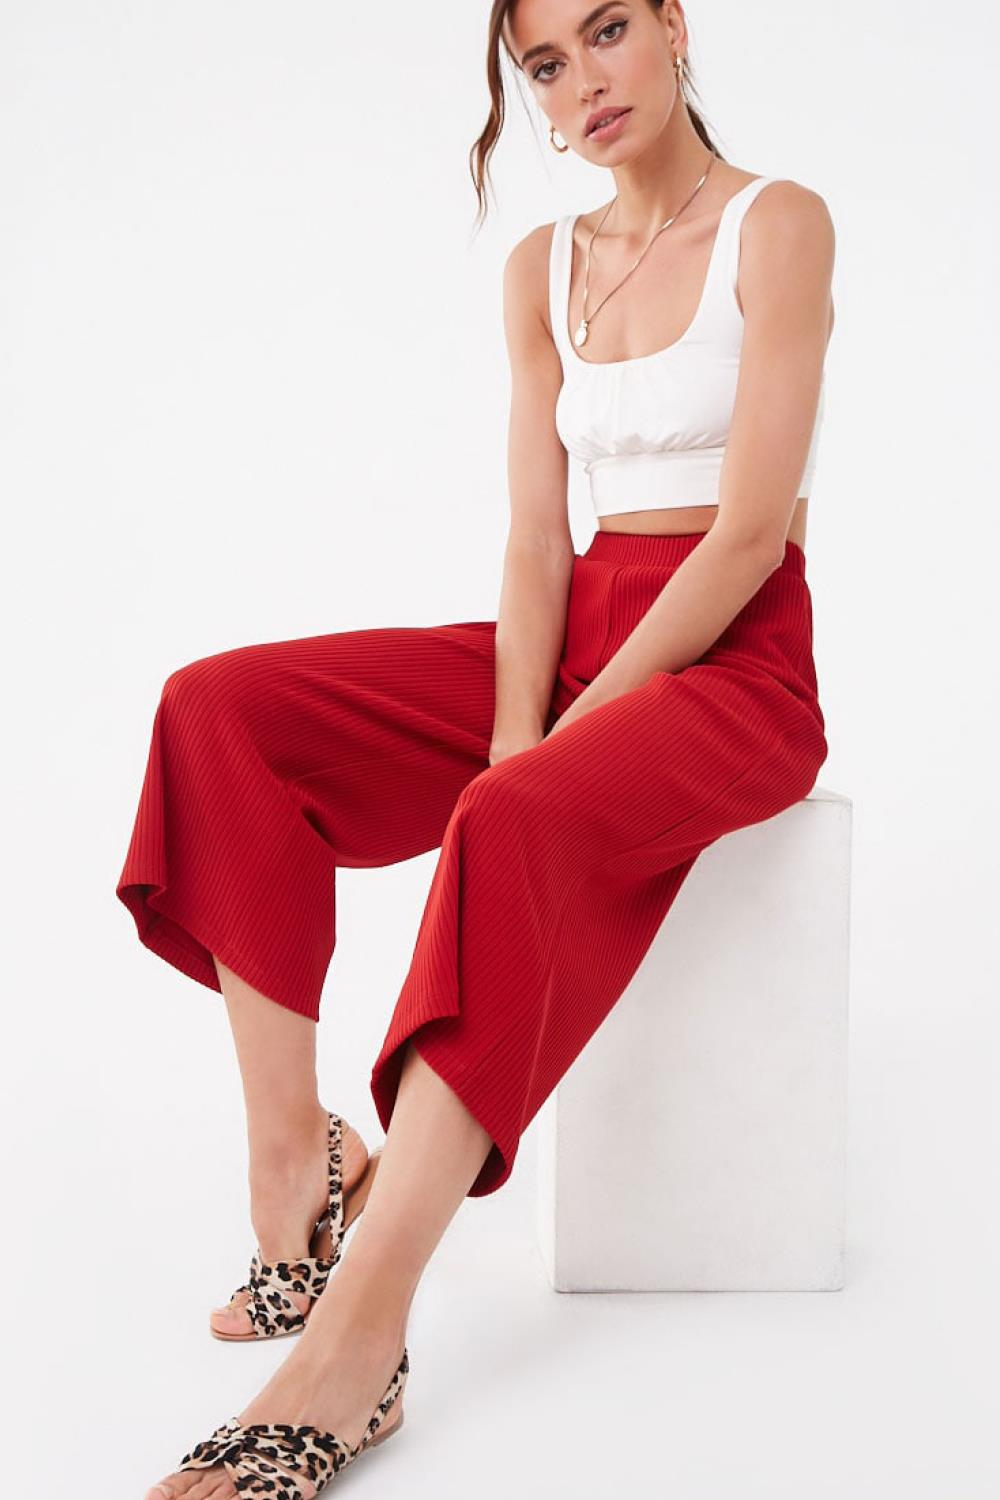 pantalones low cost forever 21 18€